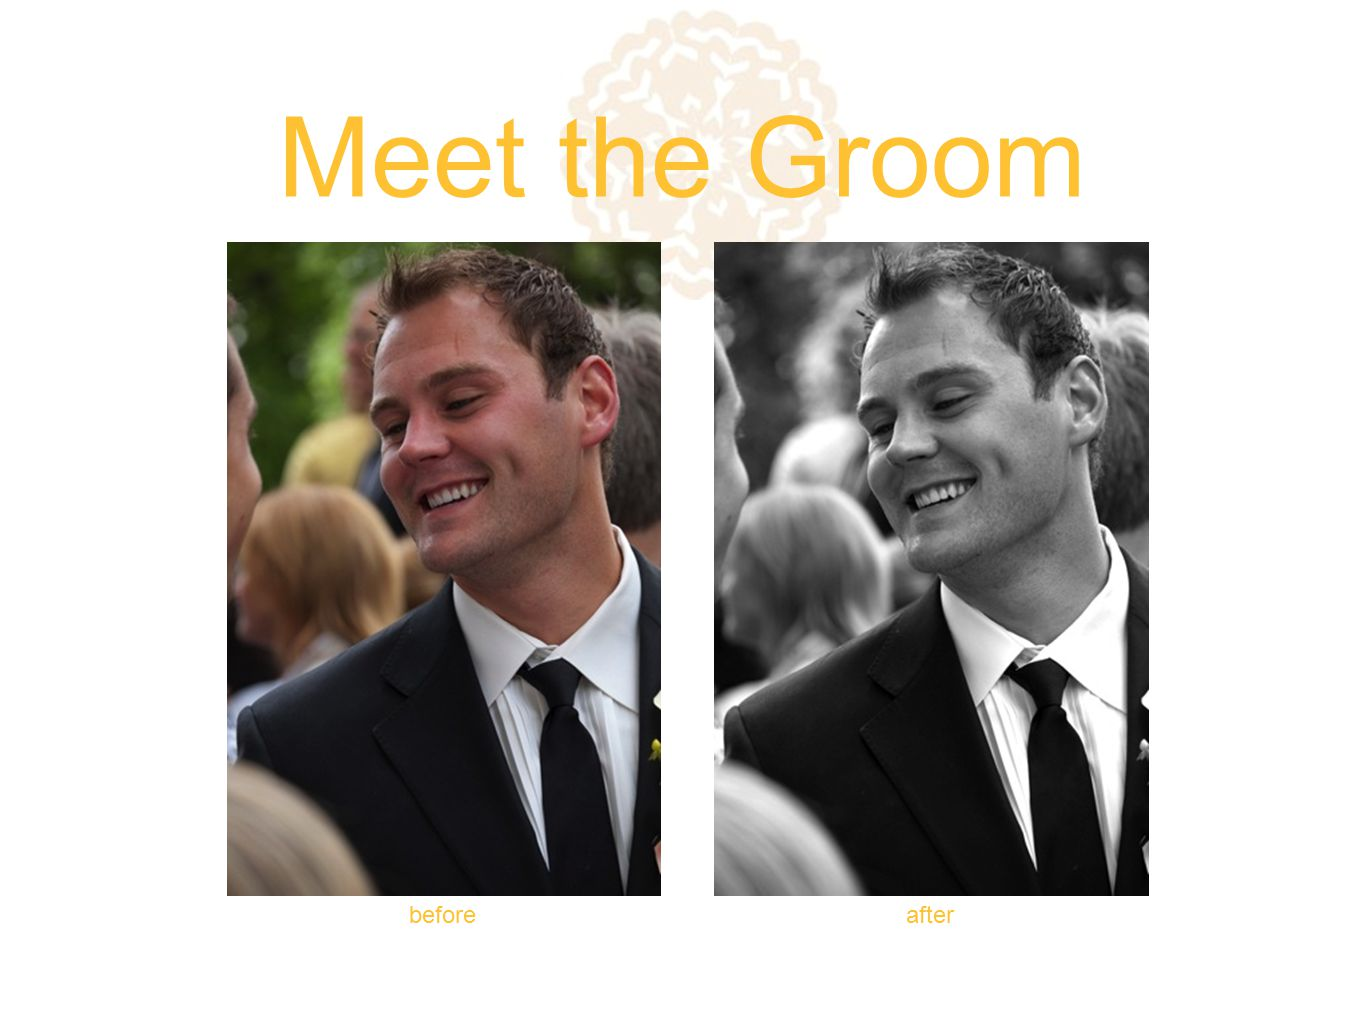 Meet the Groom beforeafter